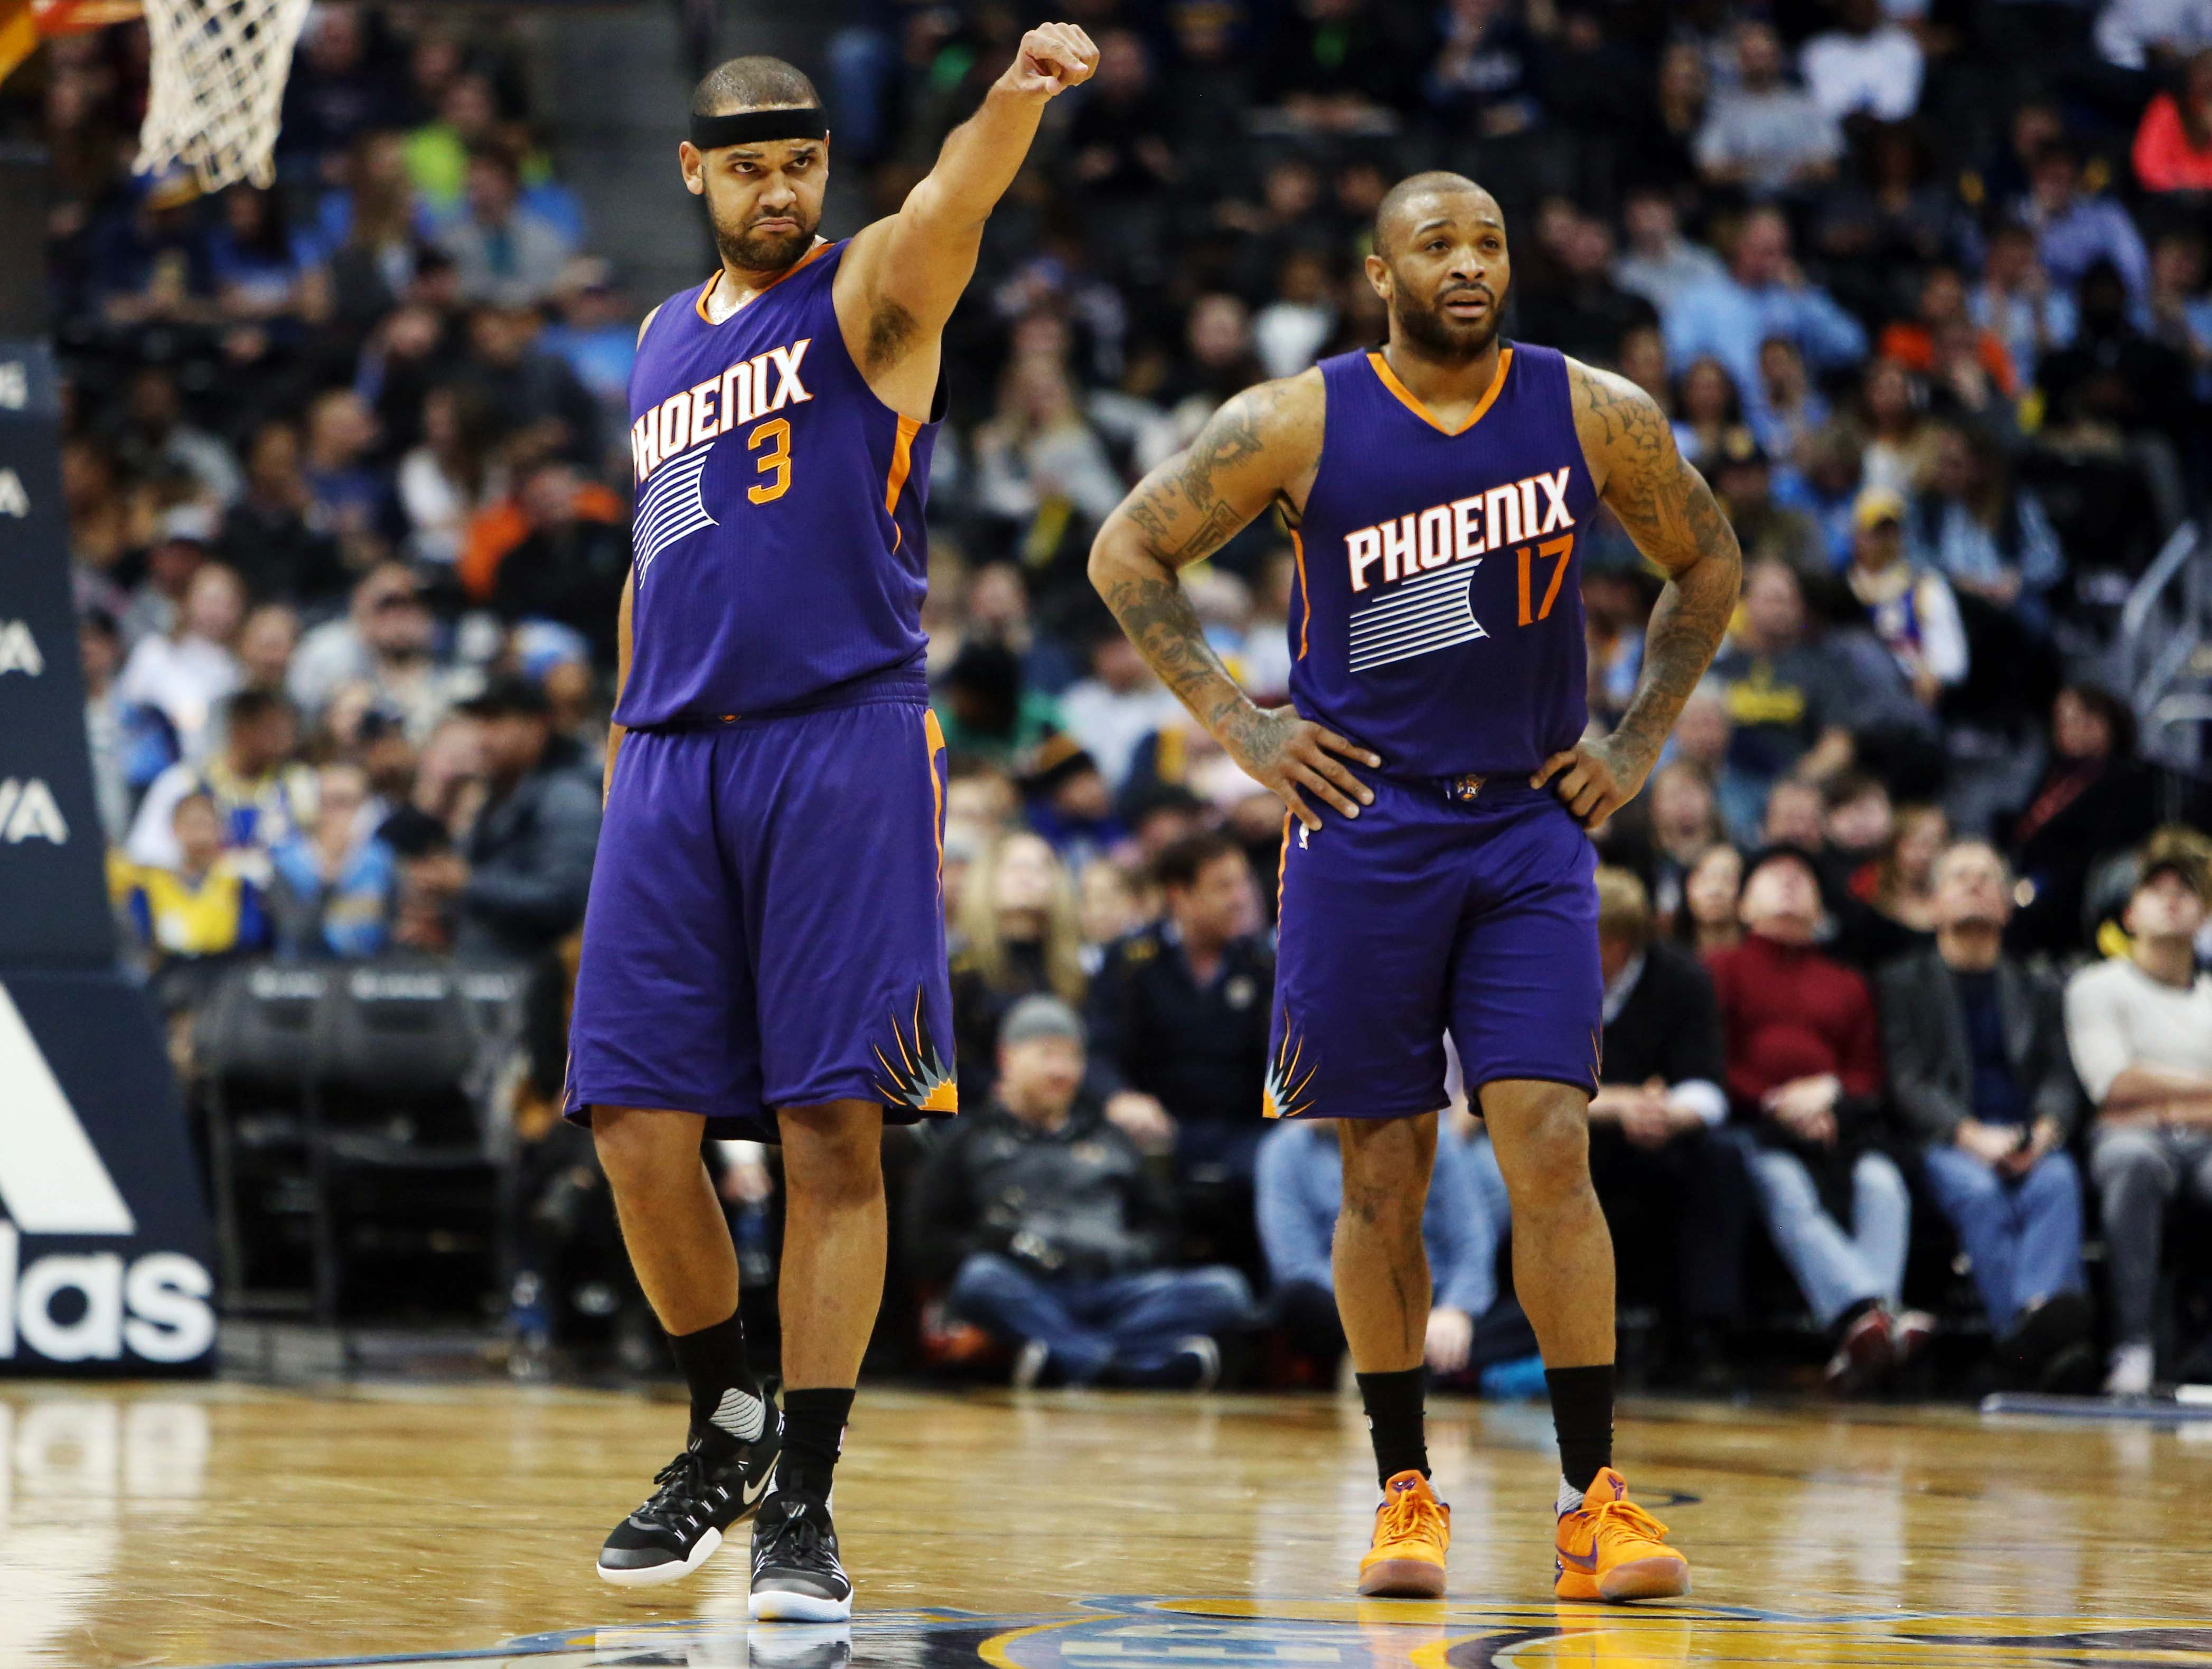 Jan 26, 2017; Denver, CO, USA; Phoenix Suns forward Jared Dudley (3) and Phoenix Suns forward P.J. Tucker (17) during the first half against the Denver Nuggets at Pepsi Center. Mandatory Credit: Chris Humphreys-USA TODAY Sports